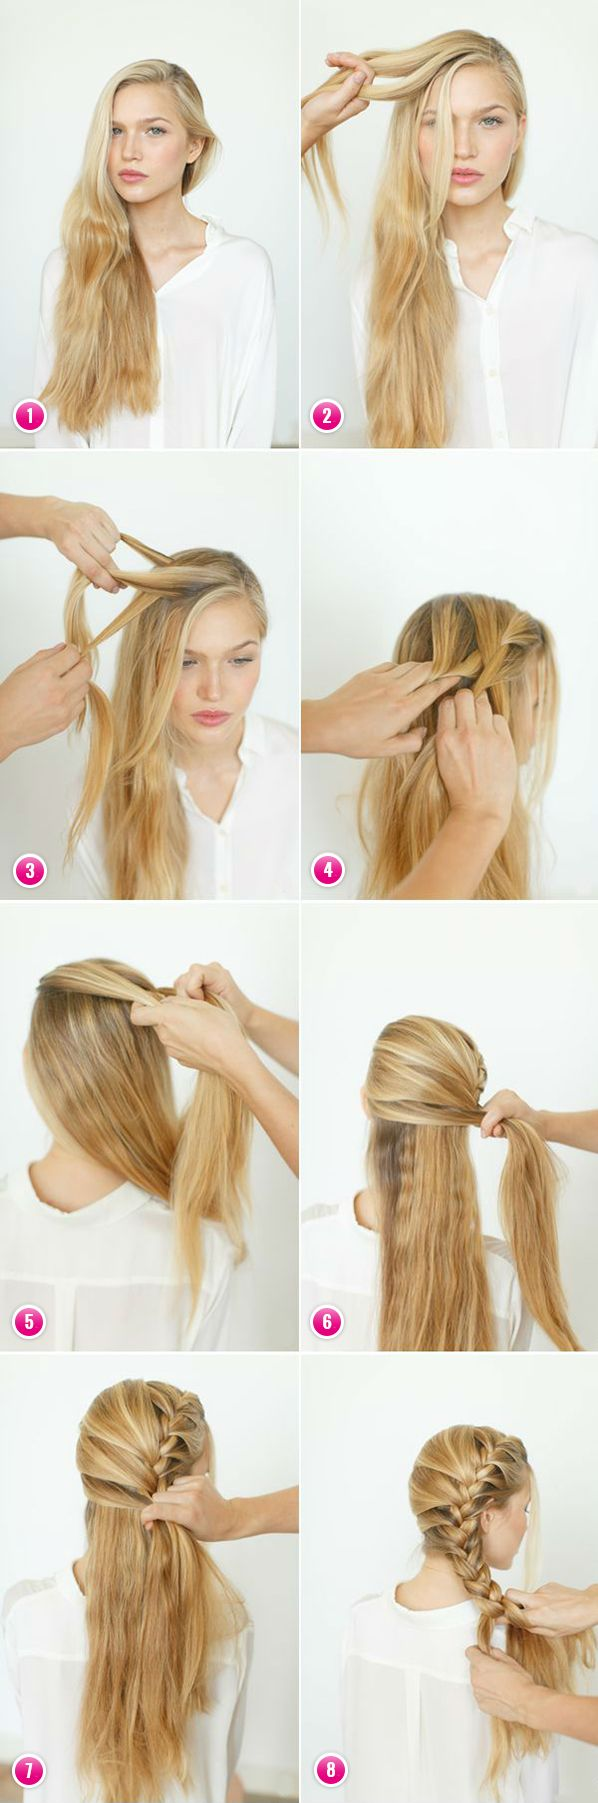 Creative Hairstyles For Long Hair Her Beauty Hair Styles Long Hair Styles Cute Braided Hairstyles